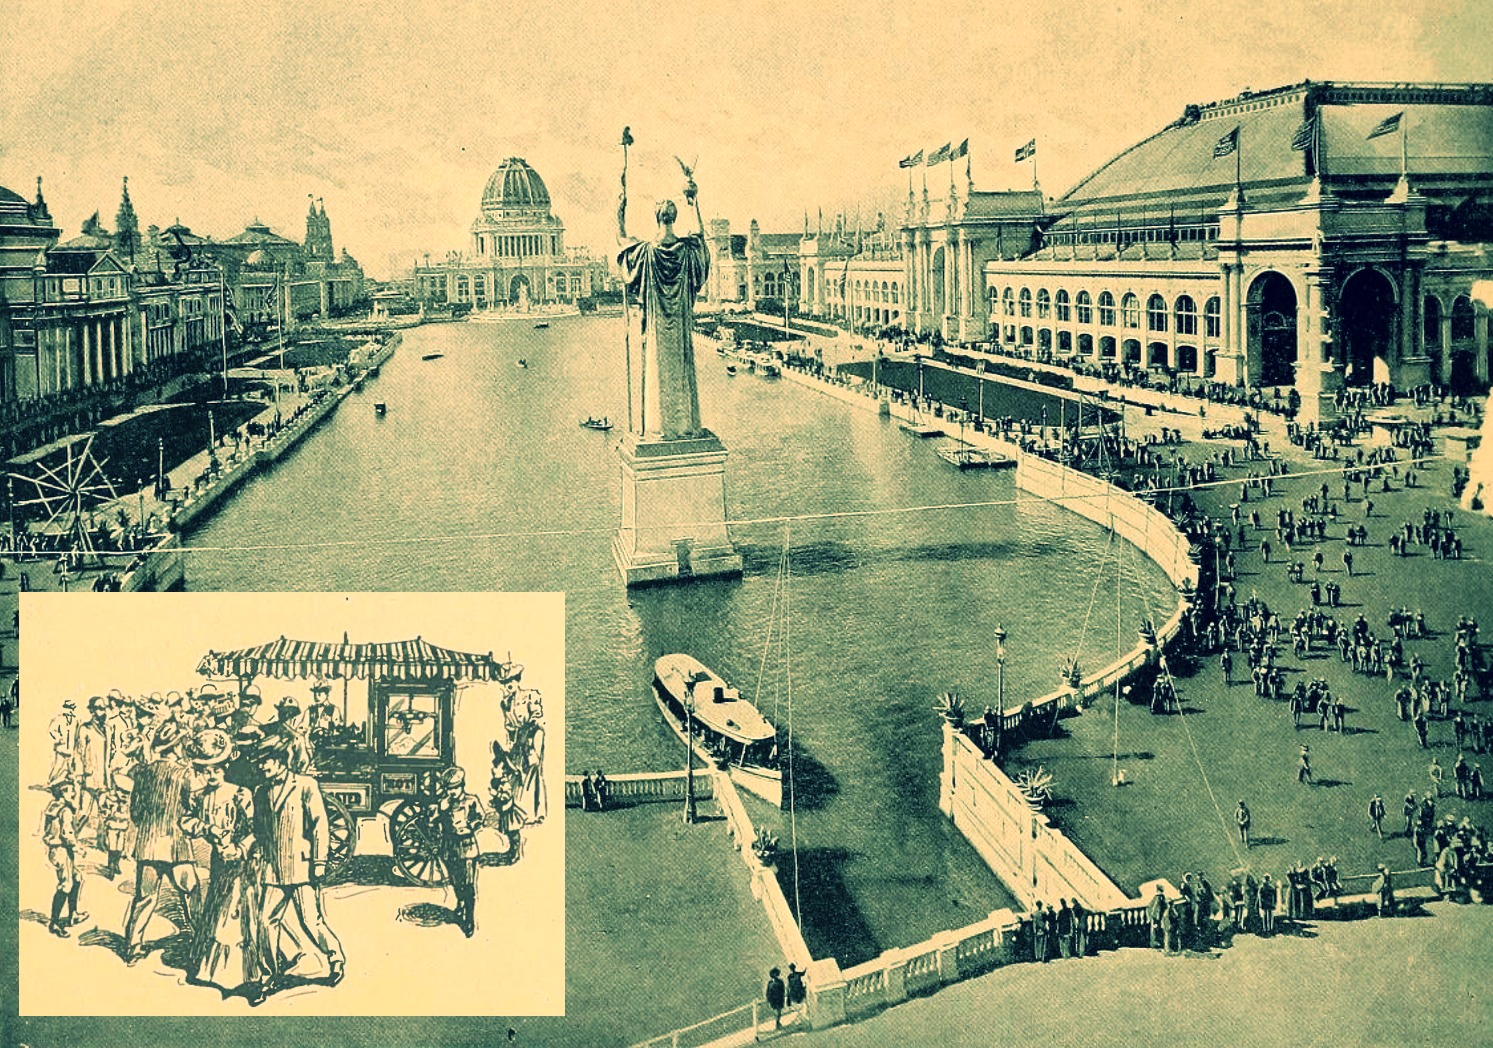 Cretors Columbian Exposition